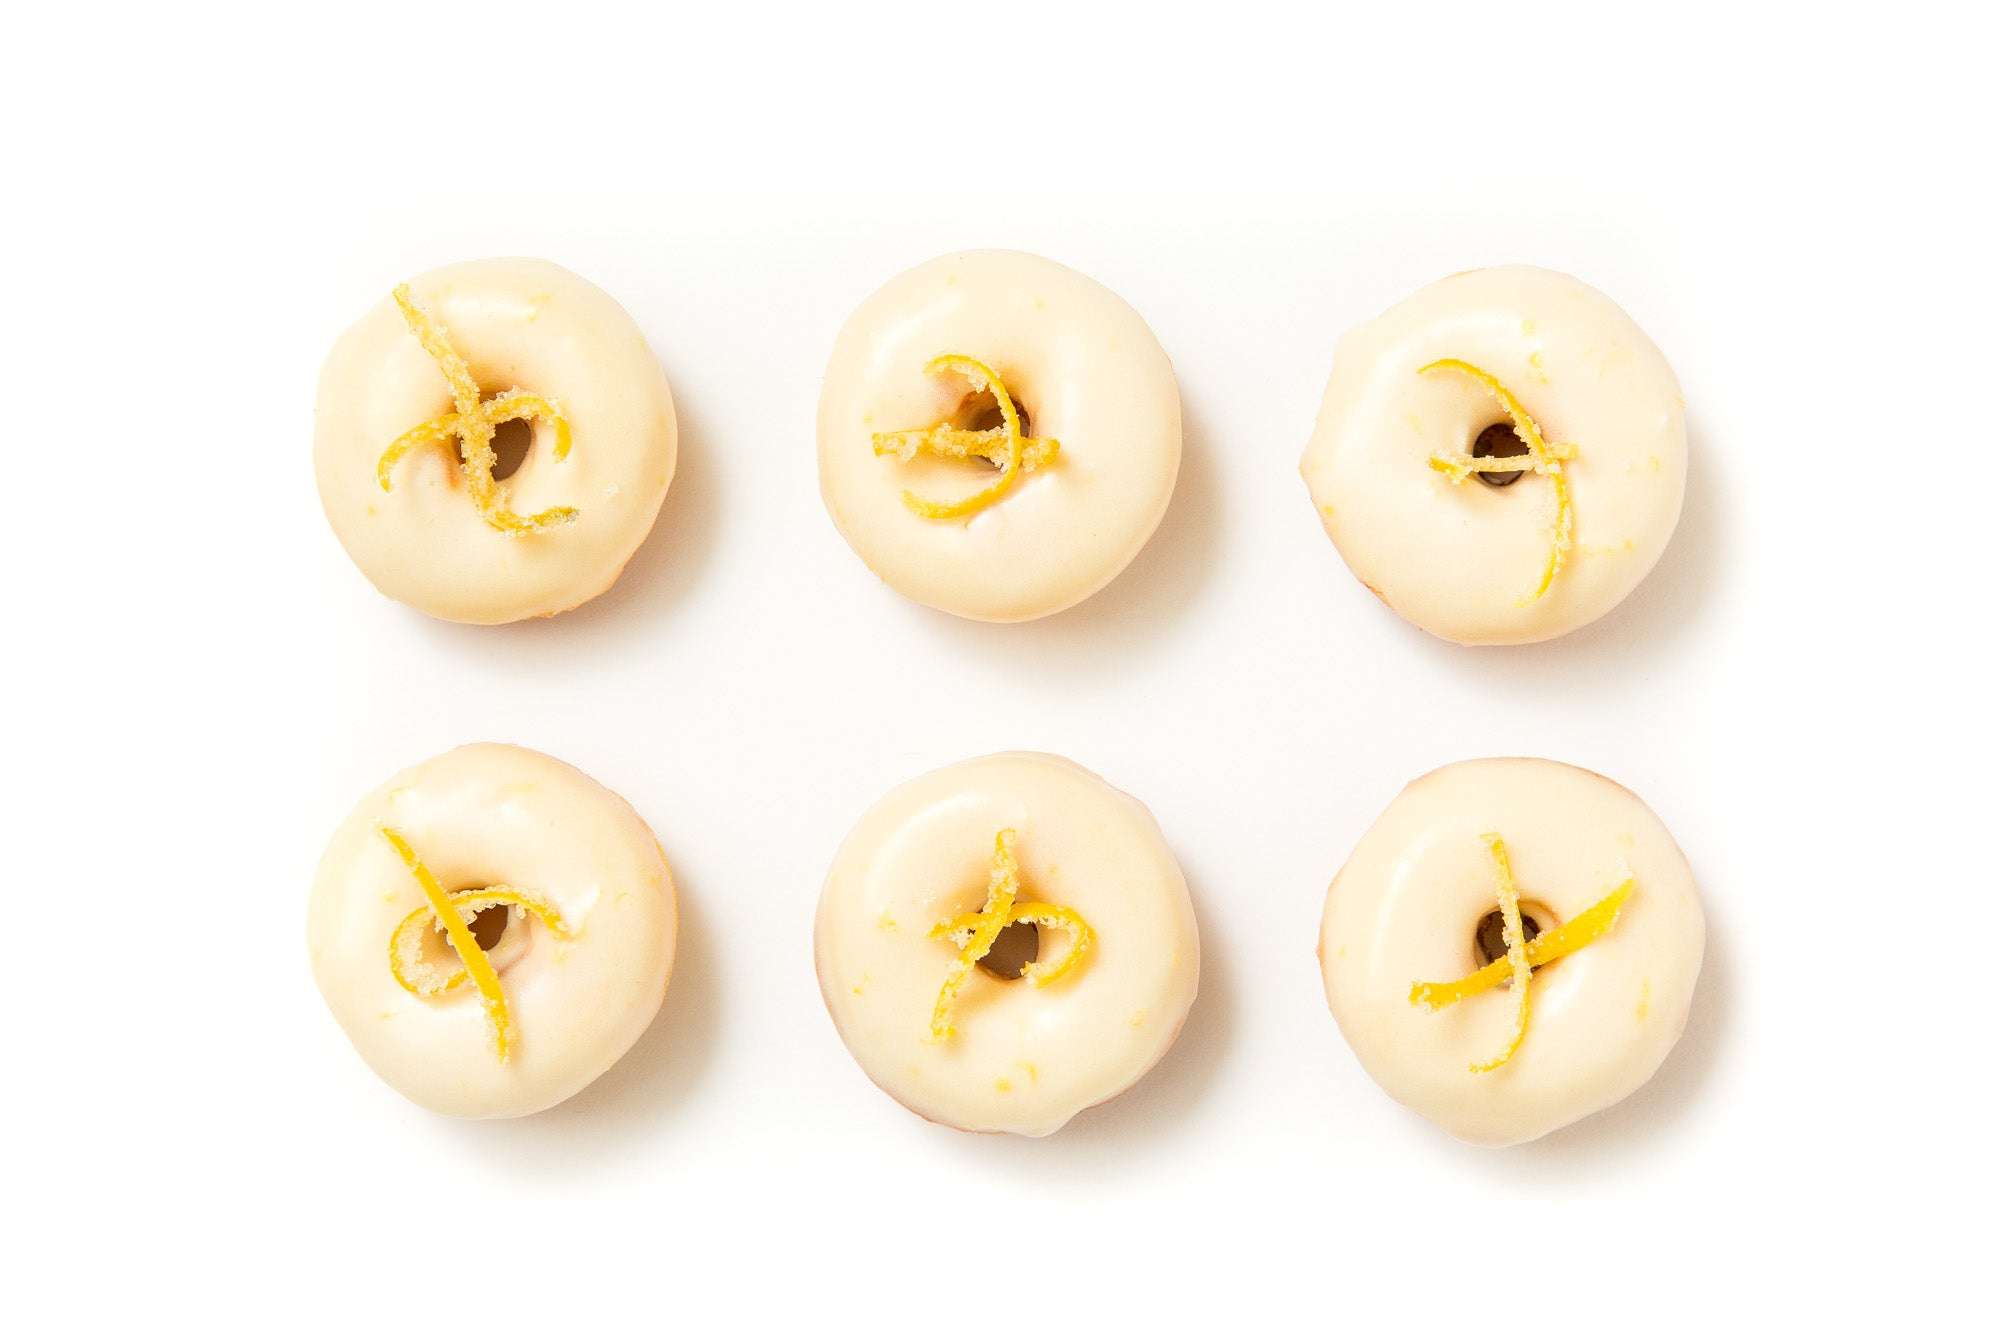 Image of six Miss Jones Baking Co Lemonade Donuts from above